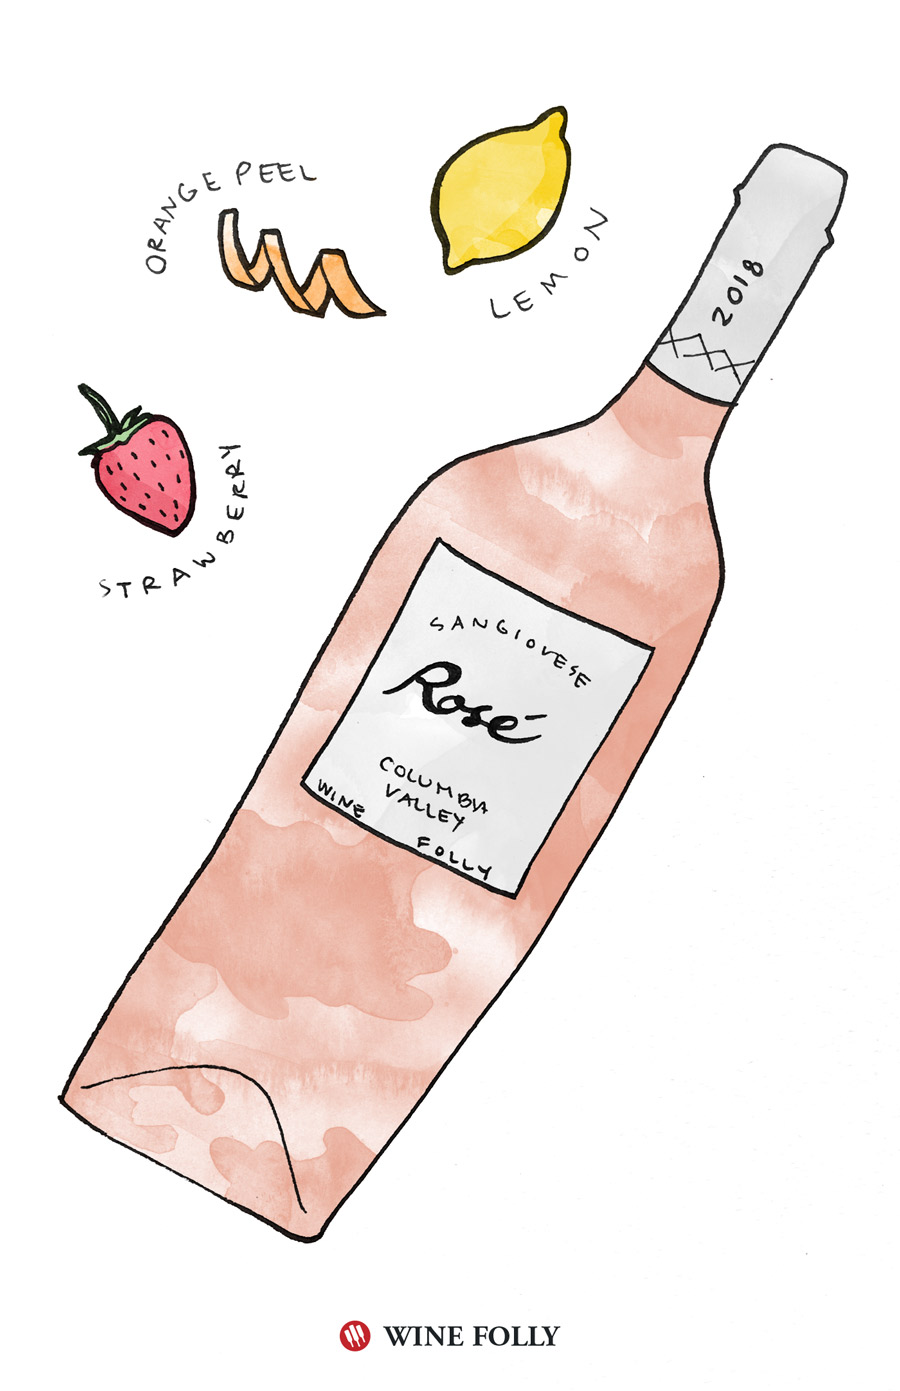 Pacific Northwest Rose Wine Illustration by Wine Folly Pacific Northwest Rose Wine Illustration by Wine Folly